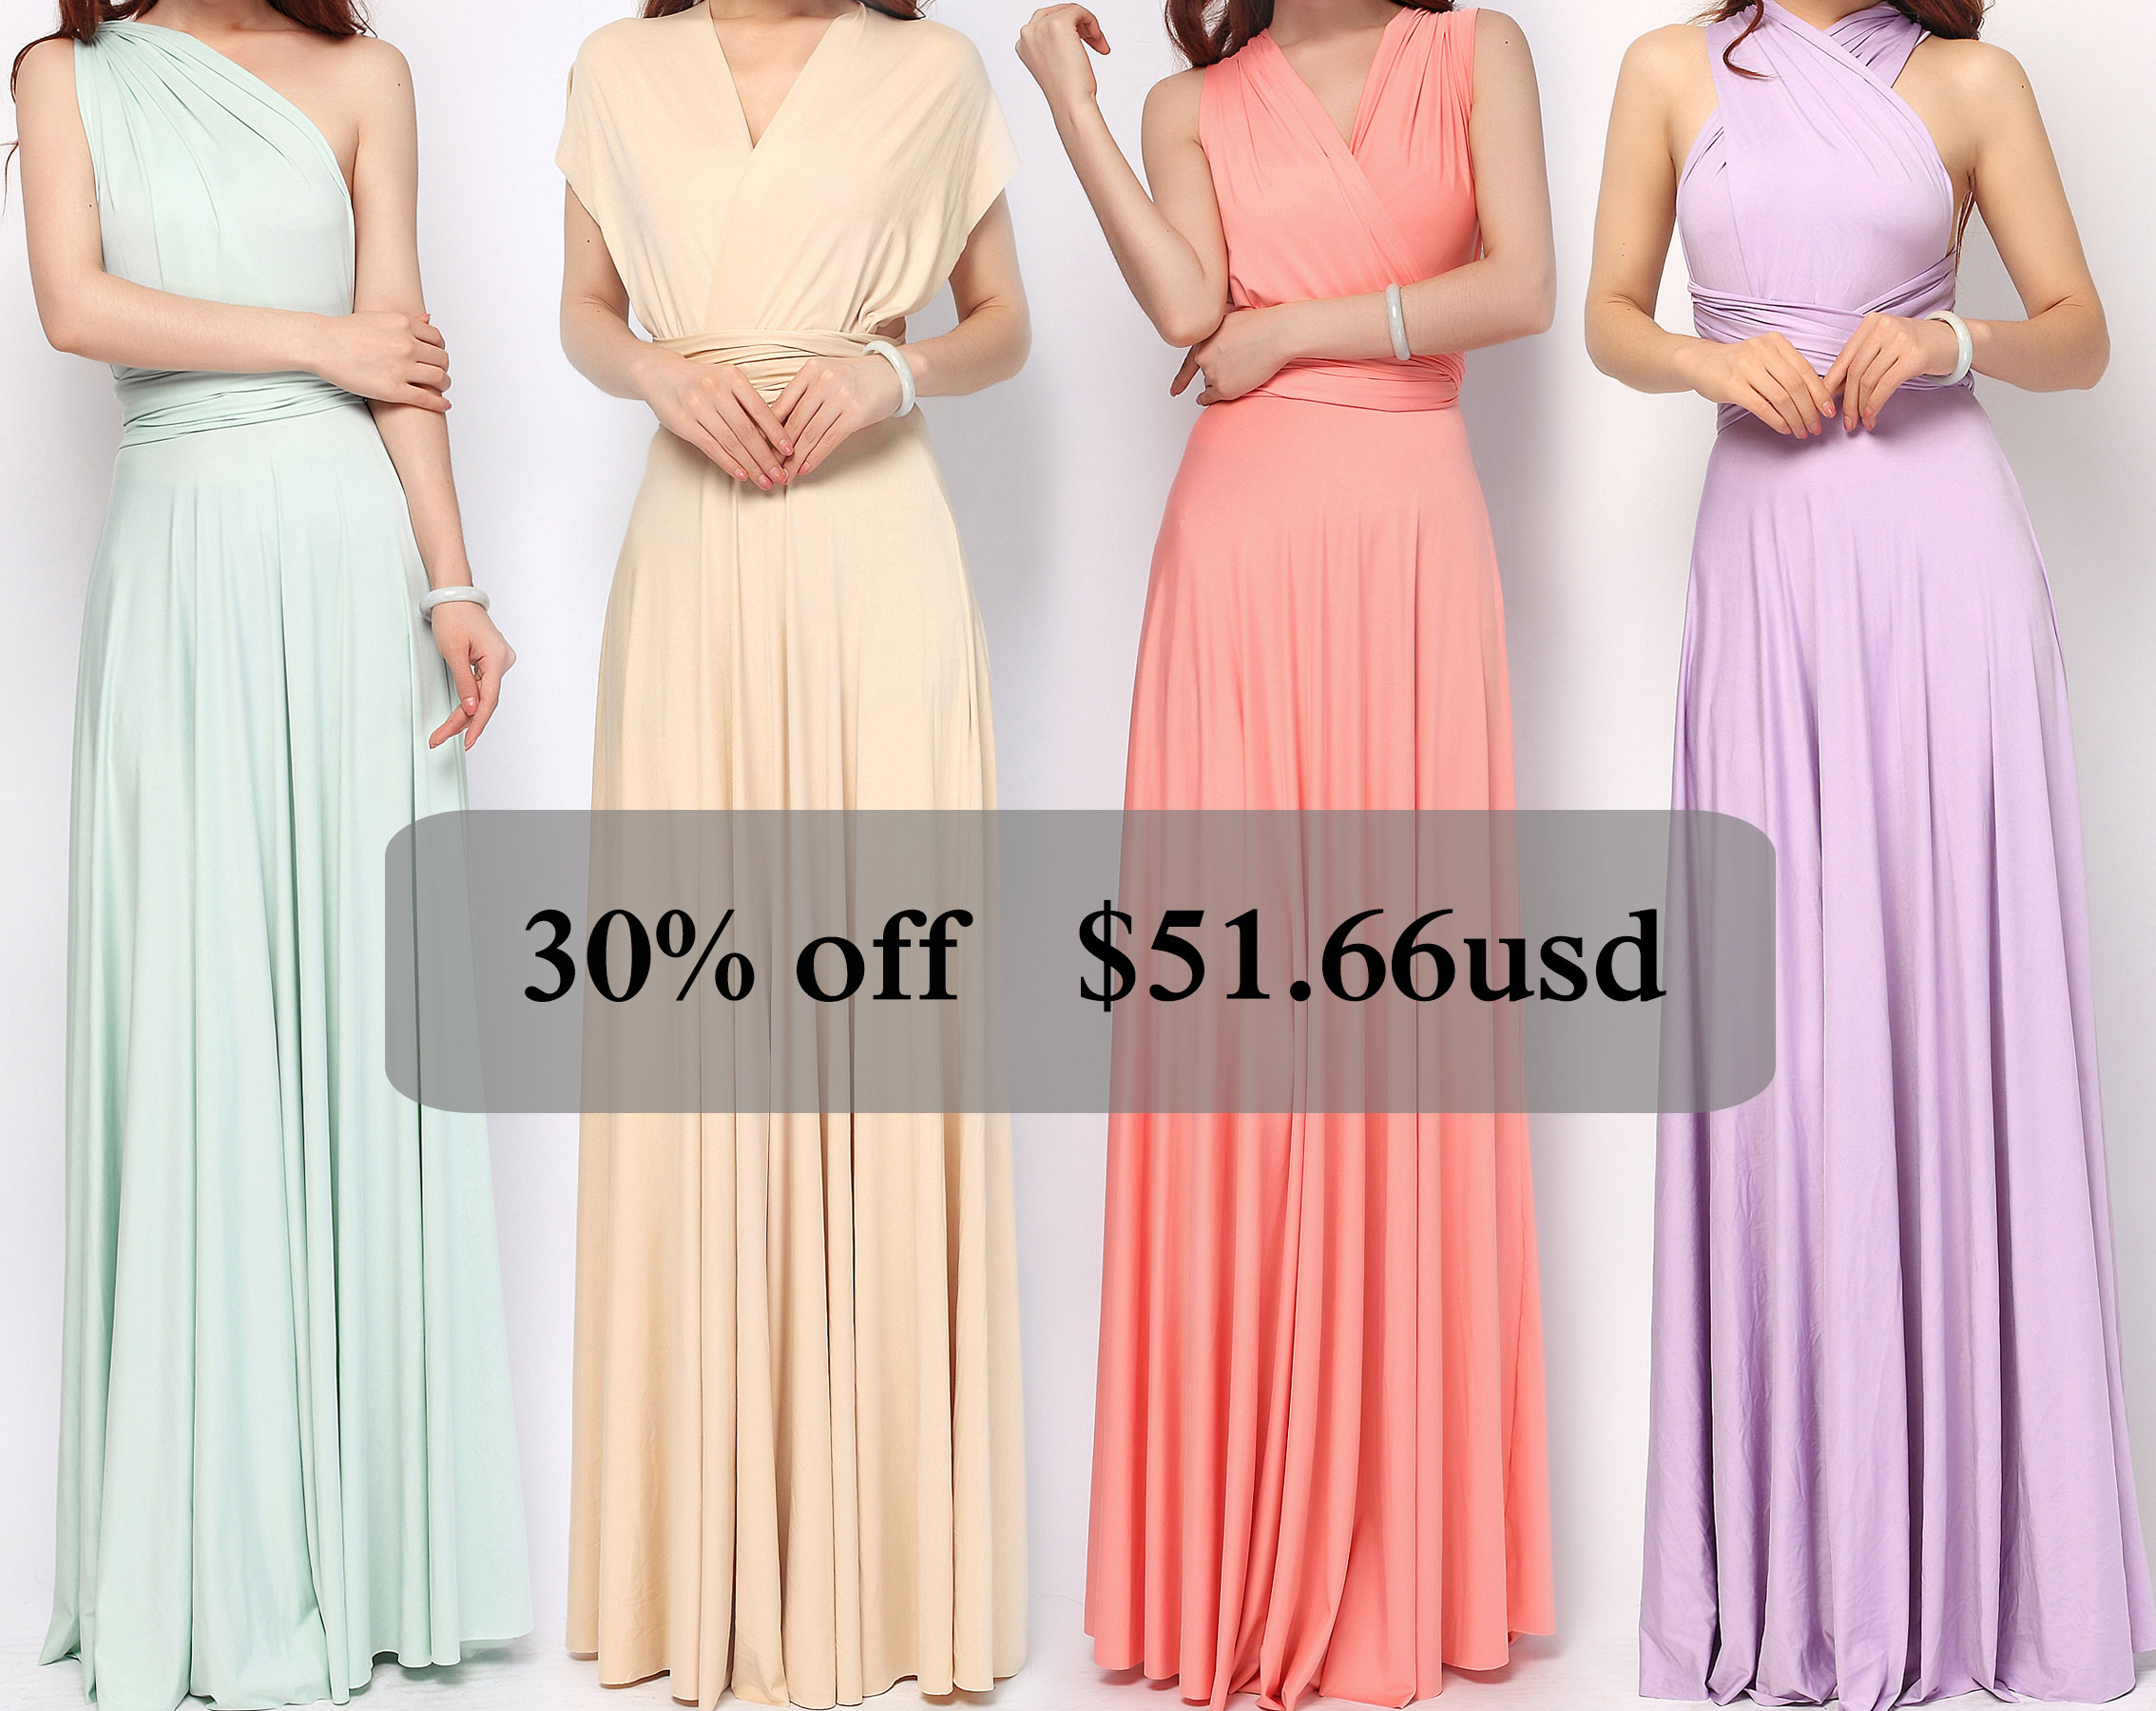 Shenyang Yi Chi Technology Co., Ltd Introduces New Collection of Infinity Dresses, Styles and More for Global Customers 8